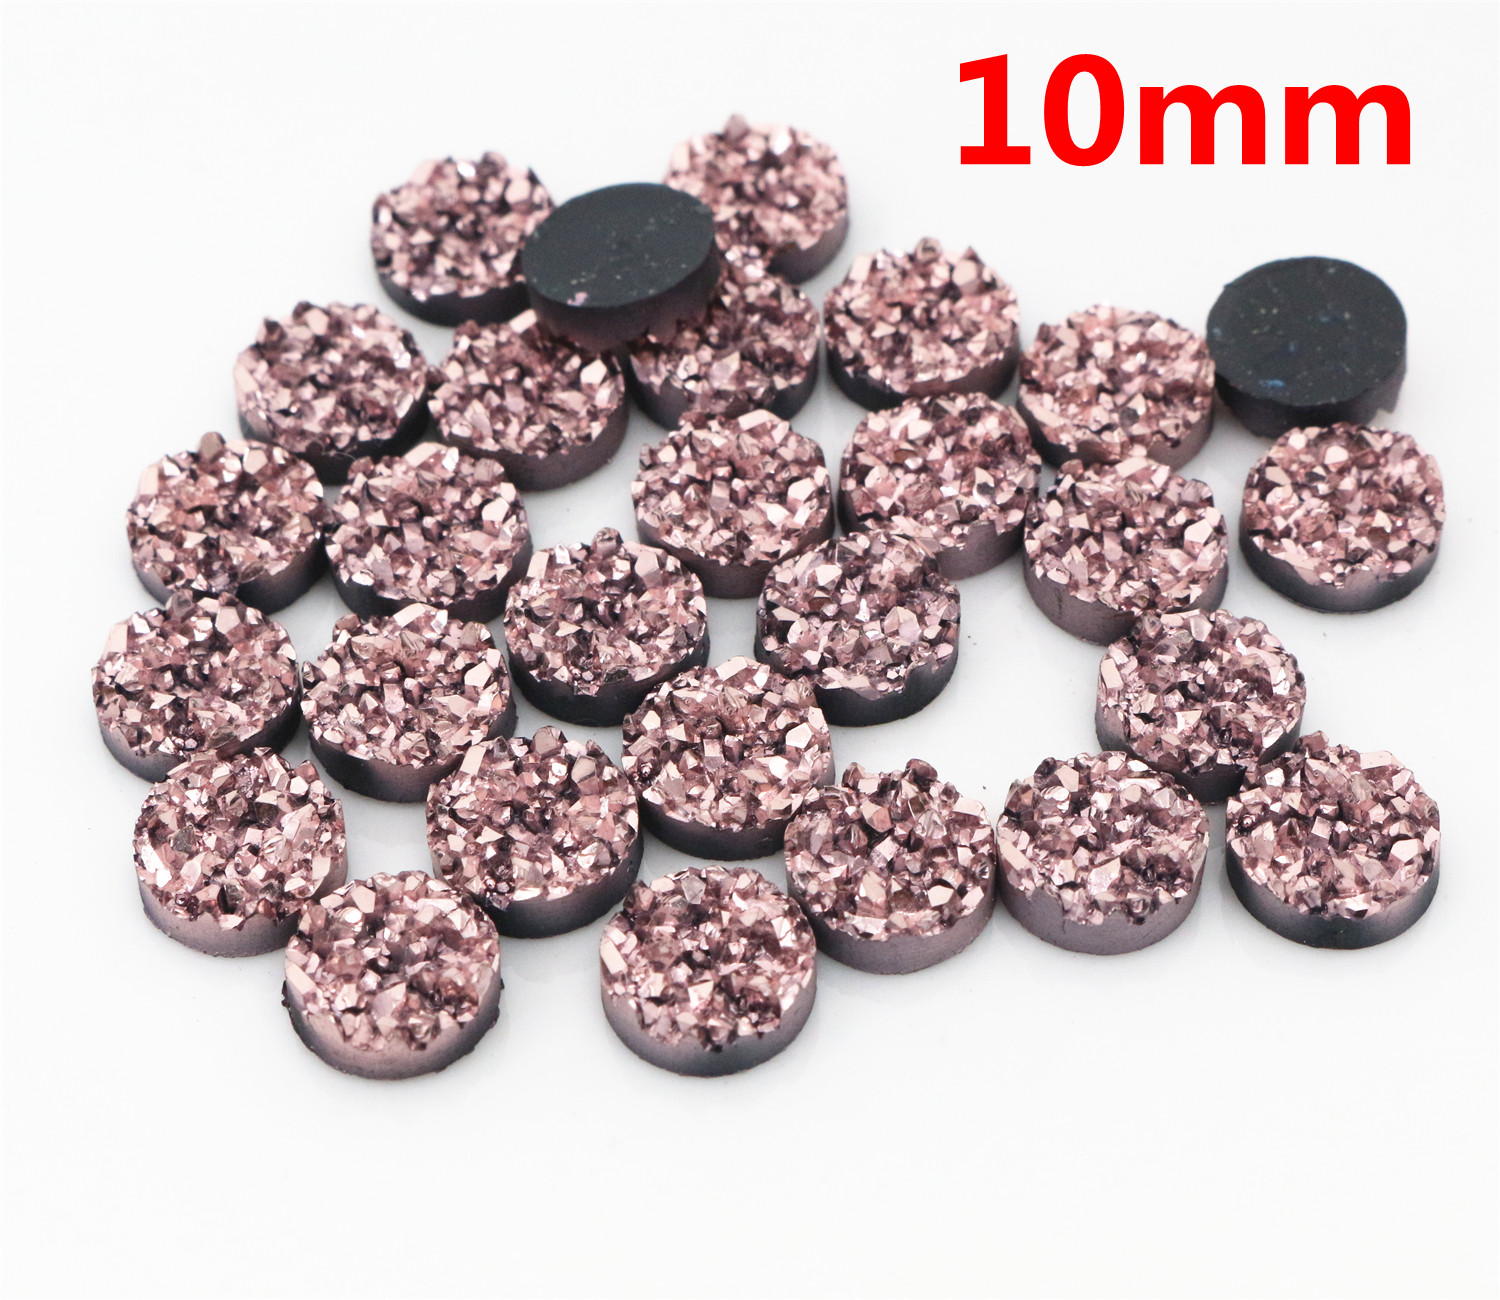 New Fashion 10mm 40pcs Rose Gold Colors Natural ore Style Flat back Resin Cabochons For Bracelet Earrings accessories T3-13New Fashion 10mm 40pcs Rose Gold Colors Natural ore Style Flat back Resin Cabochons For Bracelet Earrings accessories T3-13